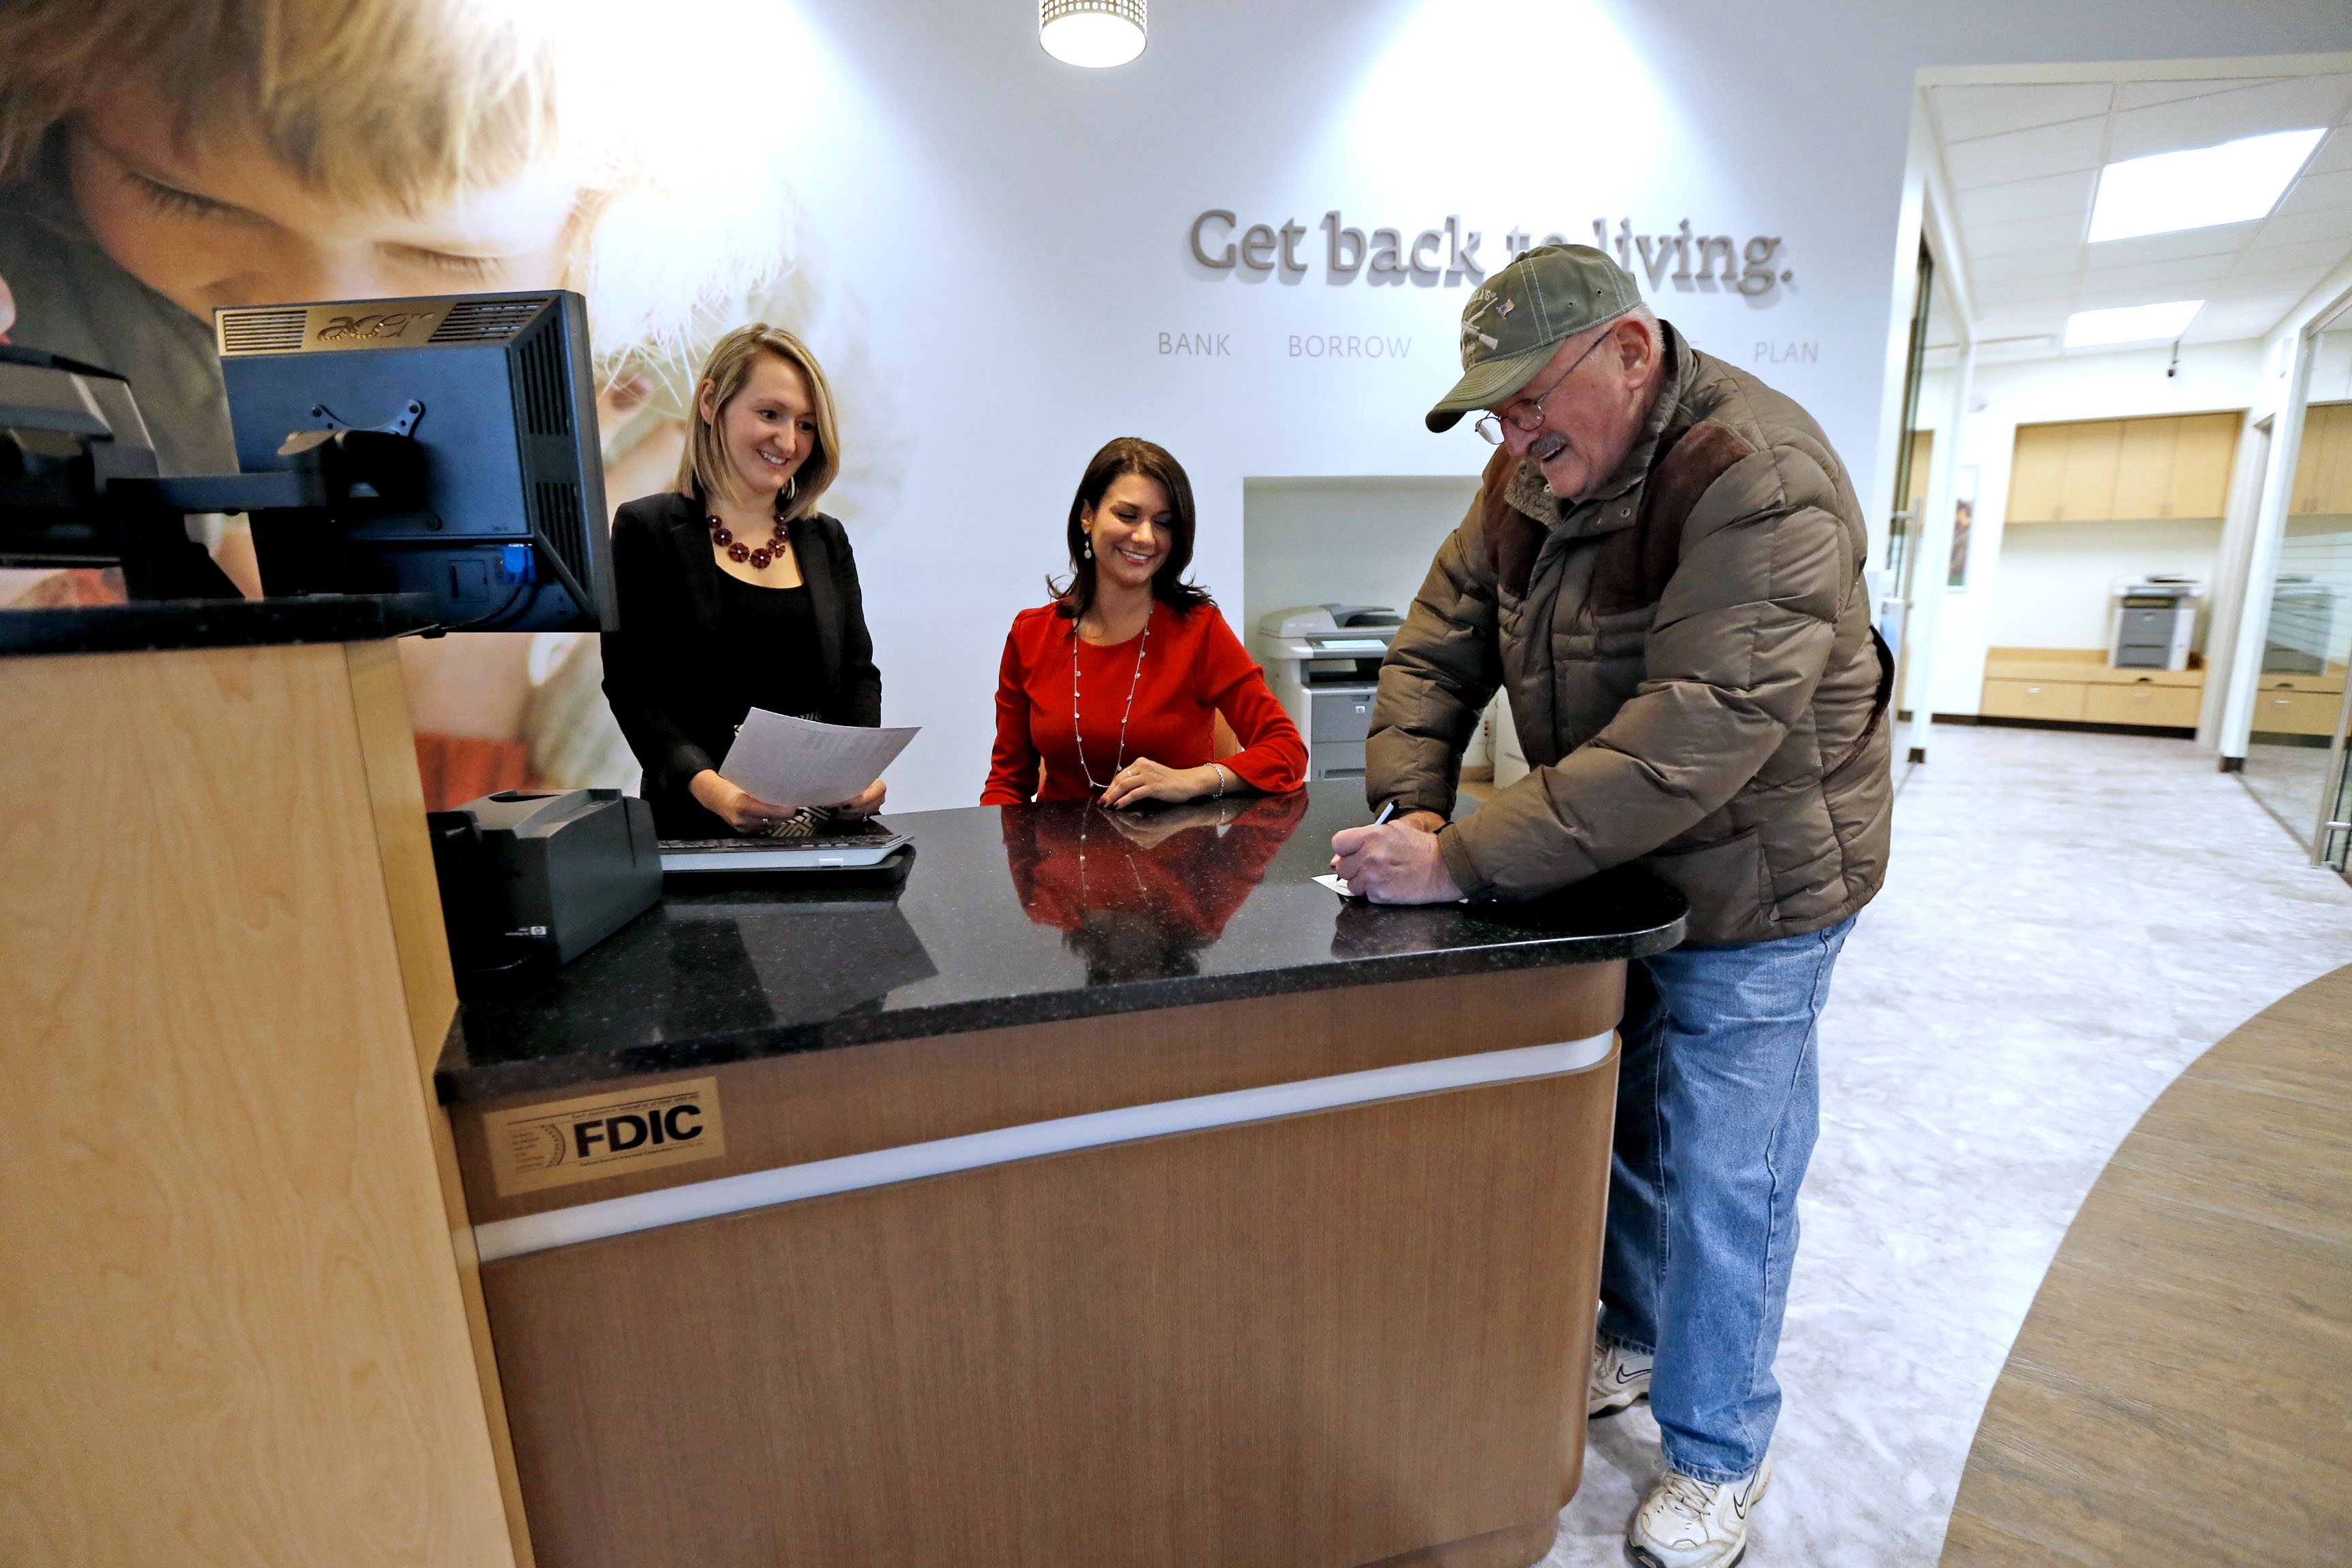 Northwest Bank employees Vanessa Prokop and Sara Manigross wait on Jim Michalczak of Orchard Park at the new open-concept branch in Orchard Park. (Robert Kirkham/Buffalo News)